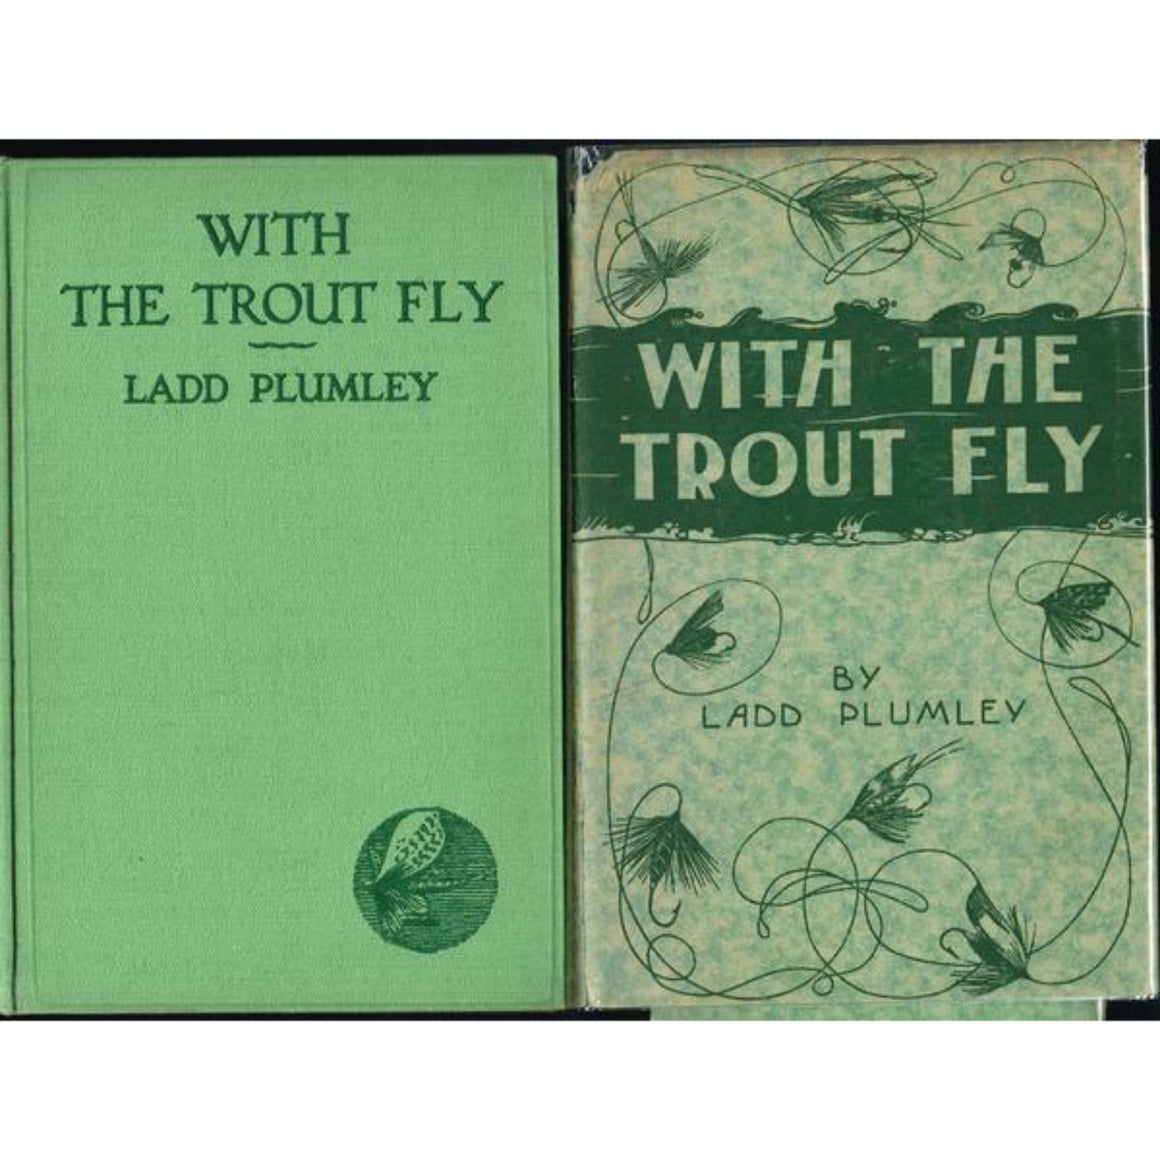 'With the Trout Fly' by Ladd Plumley